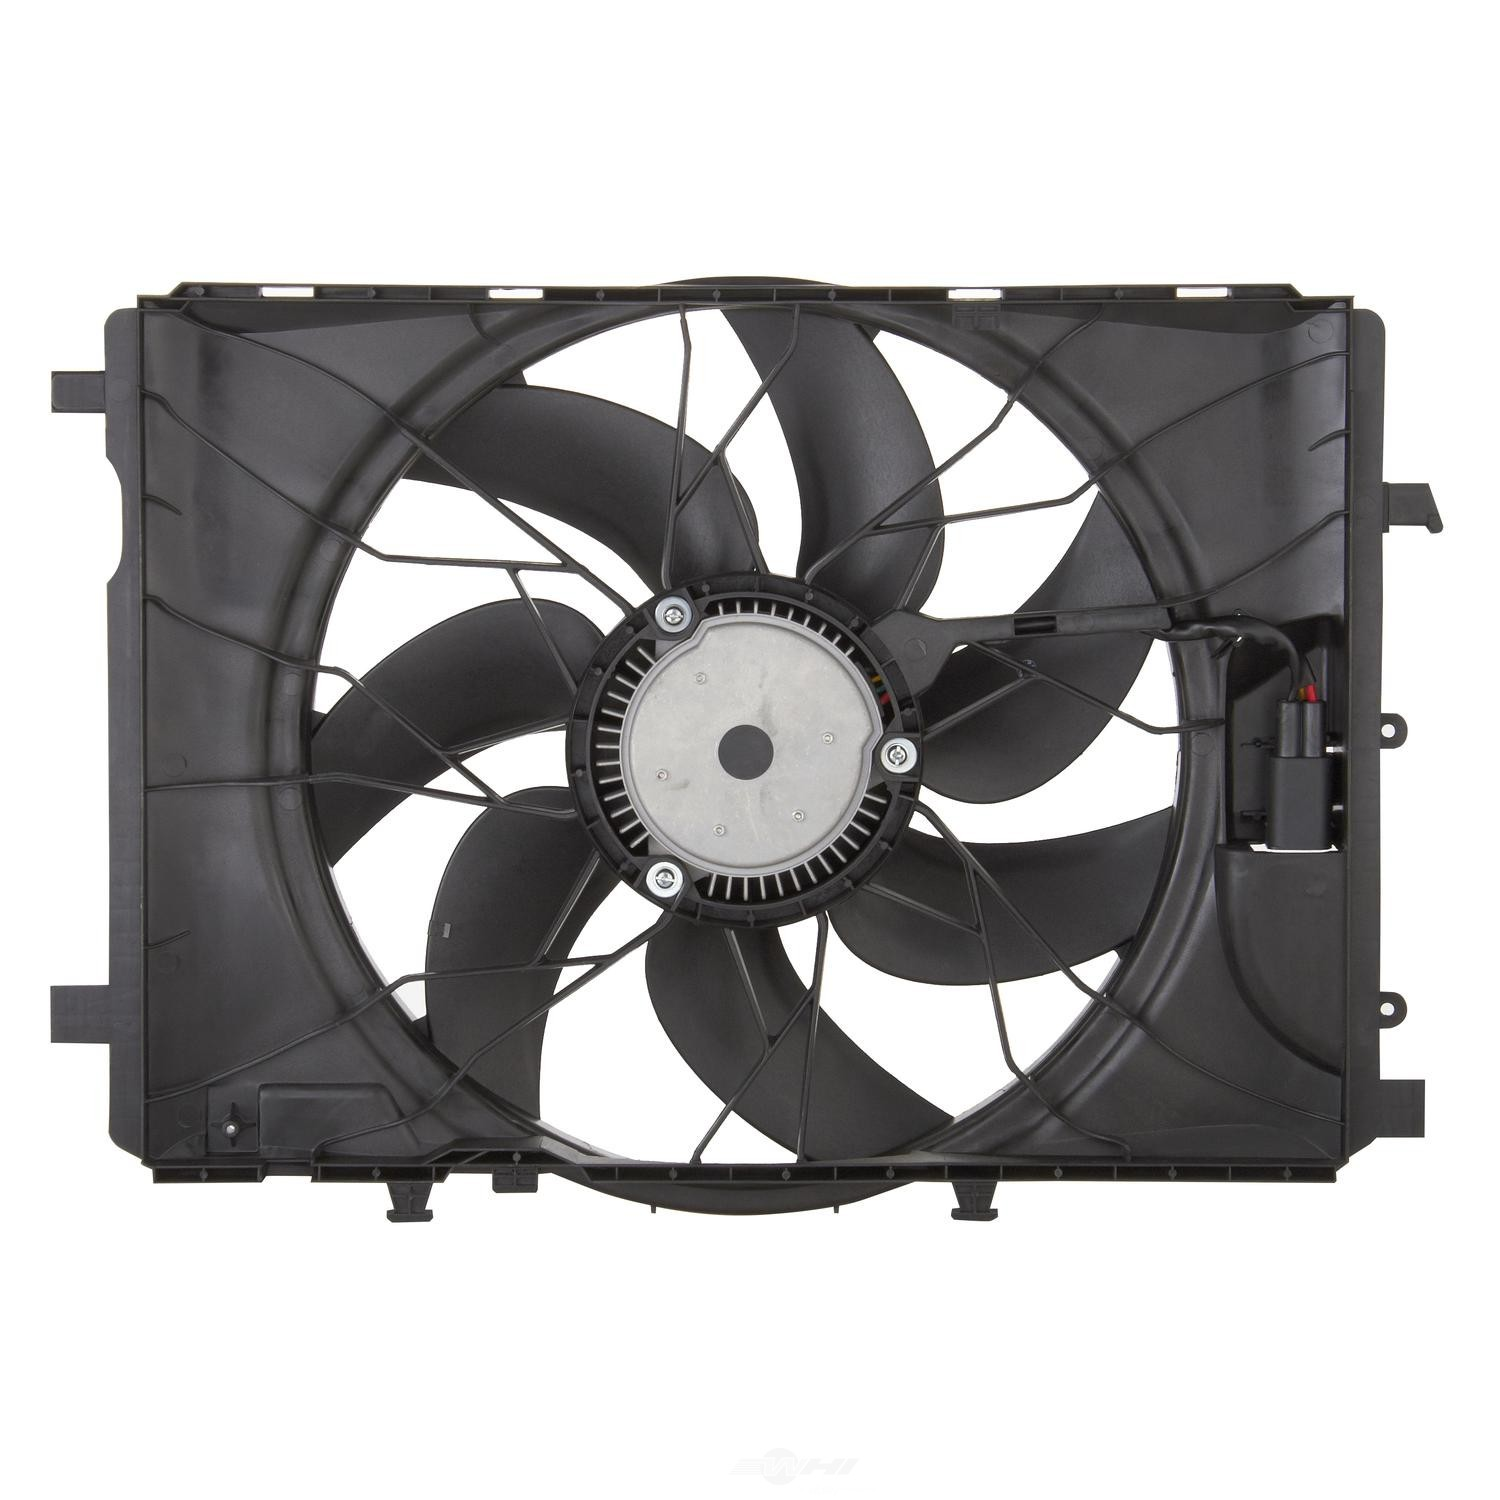 SPECTRA PREMIUM IND, INC. - Engine Cooling Fan Assembly - SPC CF24005